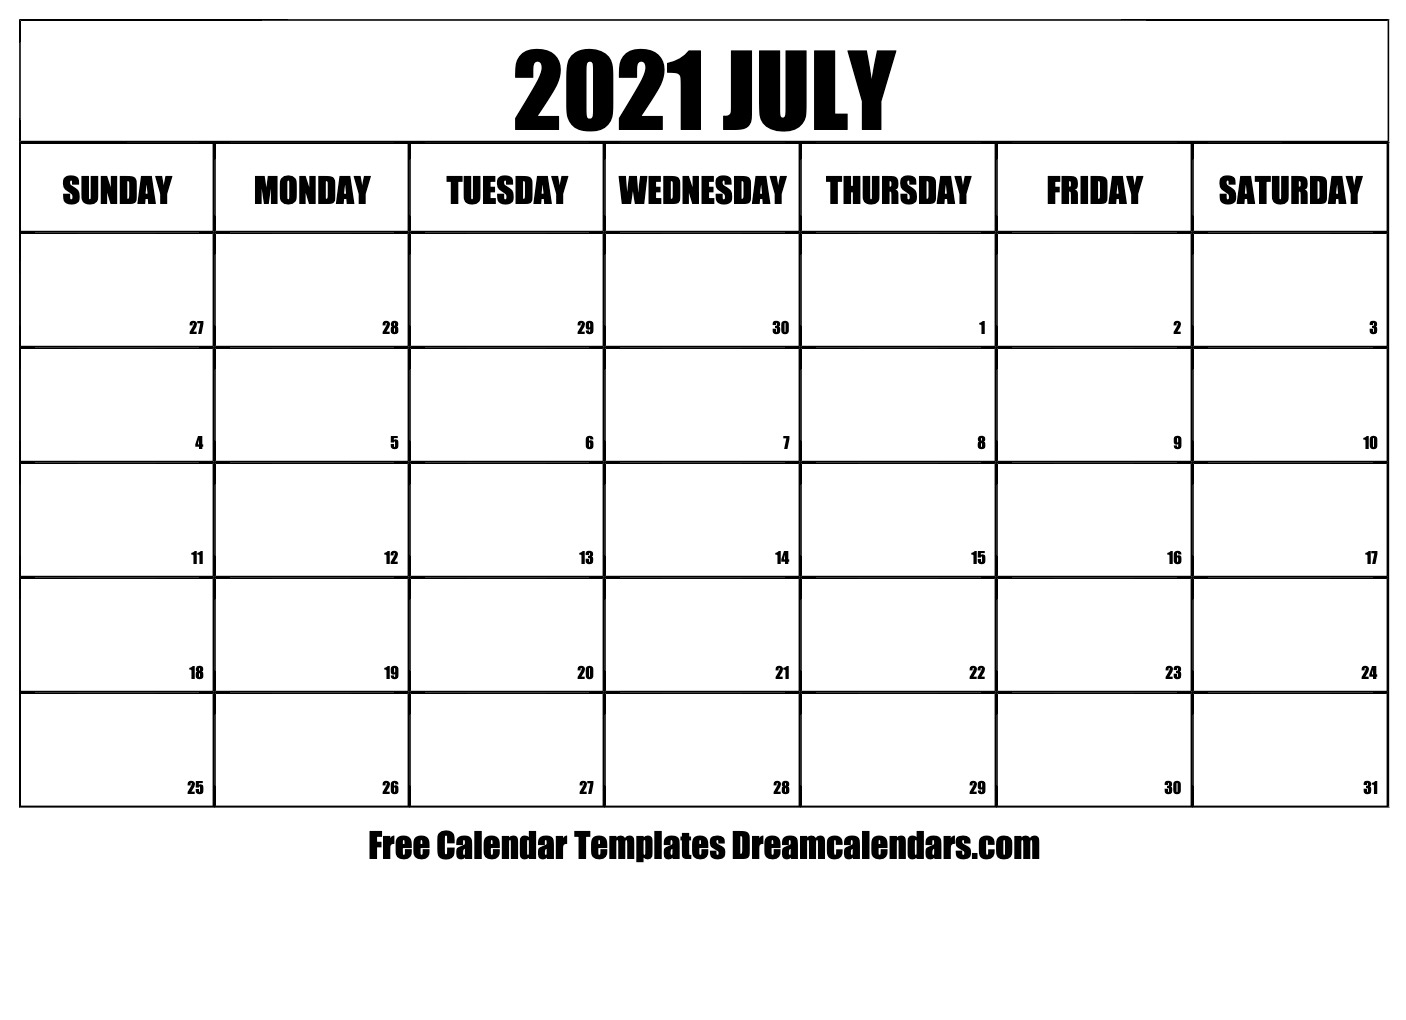 July 2021 Calendar | Free Blank Printable Templates Within Printable Sunrise And Sunset Calander 2021